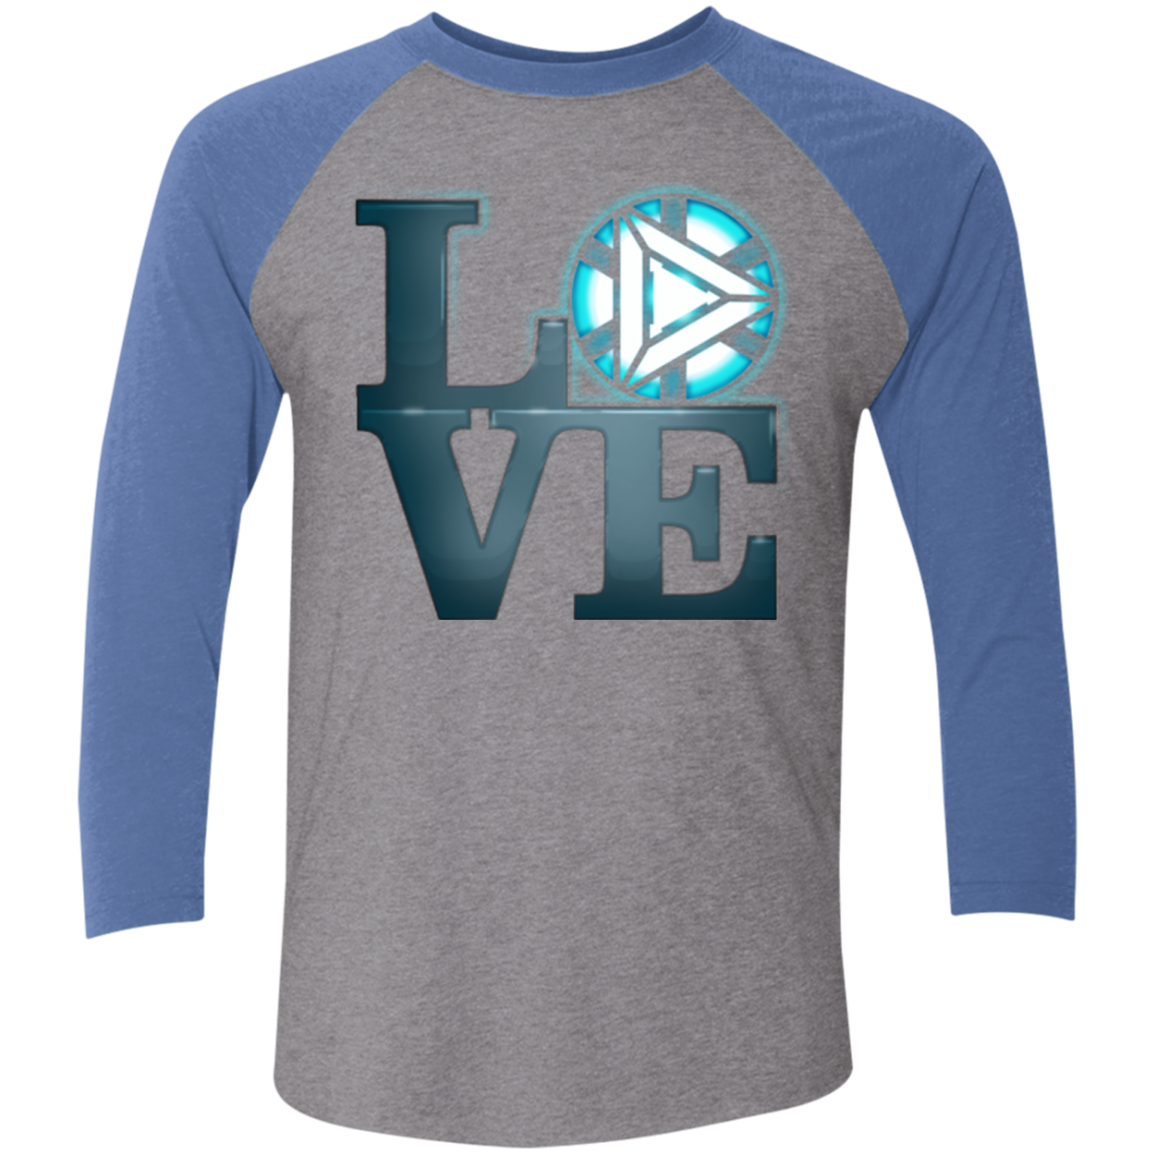 Love Stark Men's Triblend 3/4 Sleeve